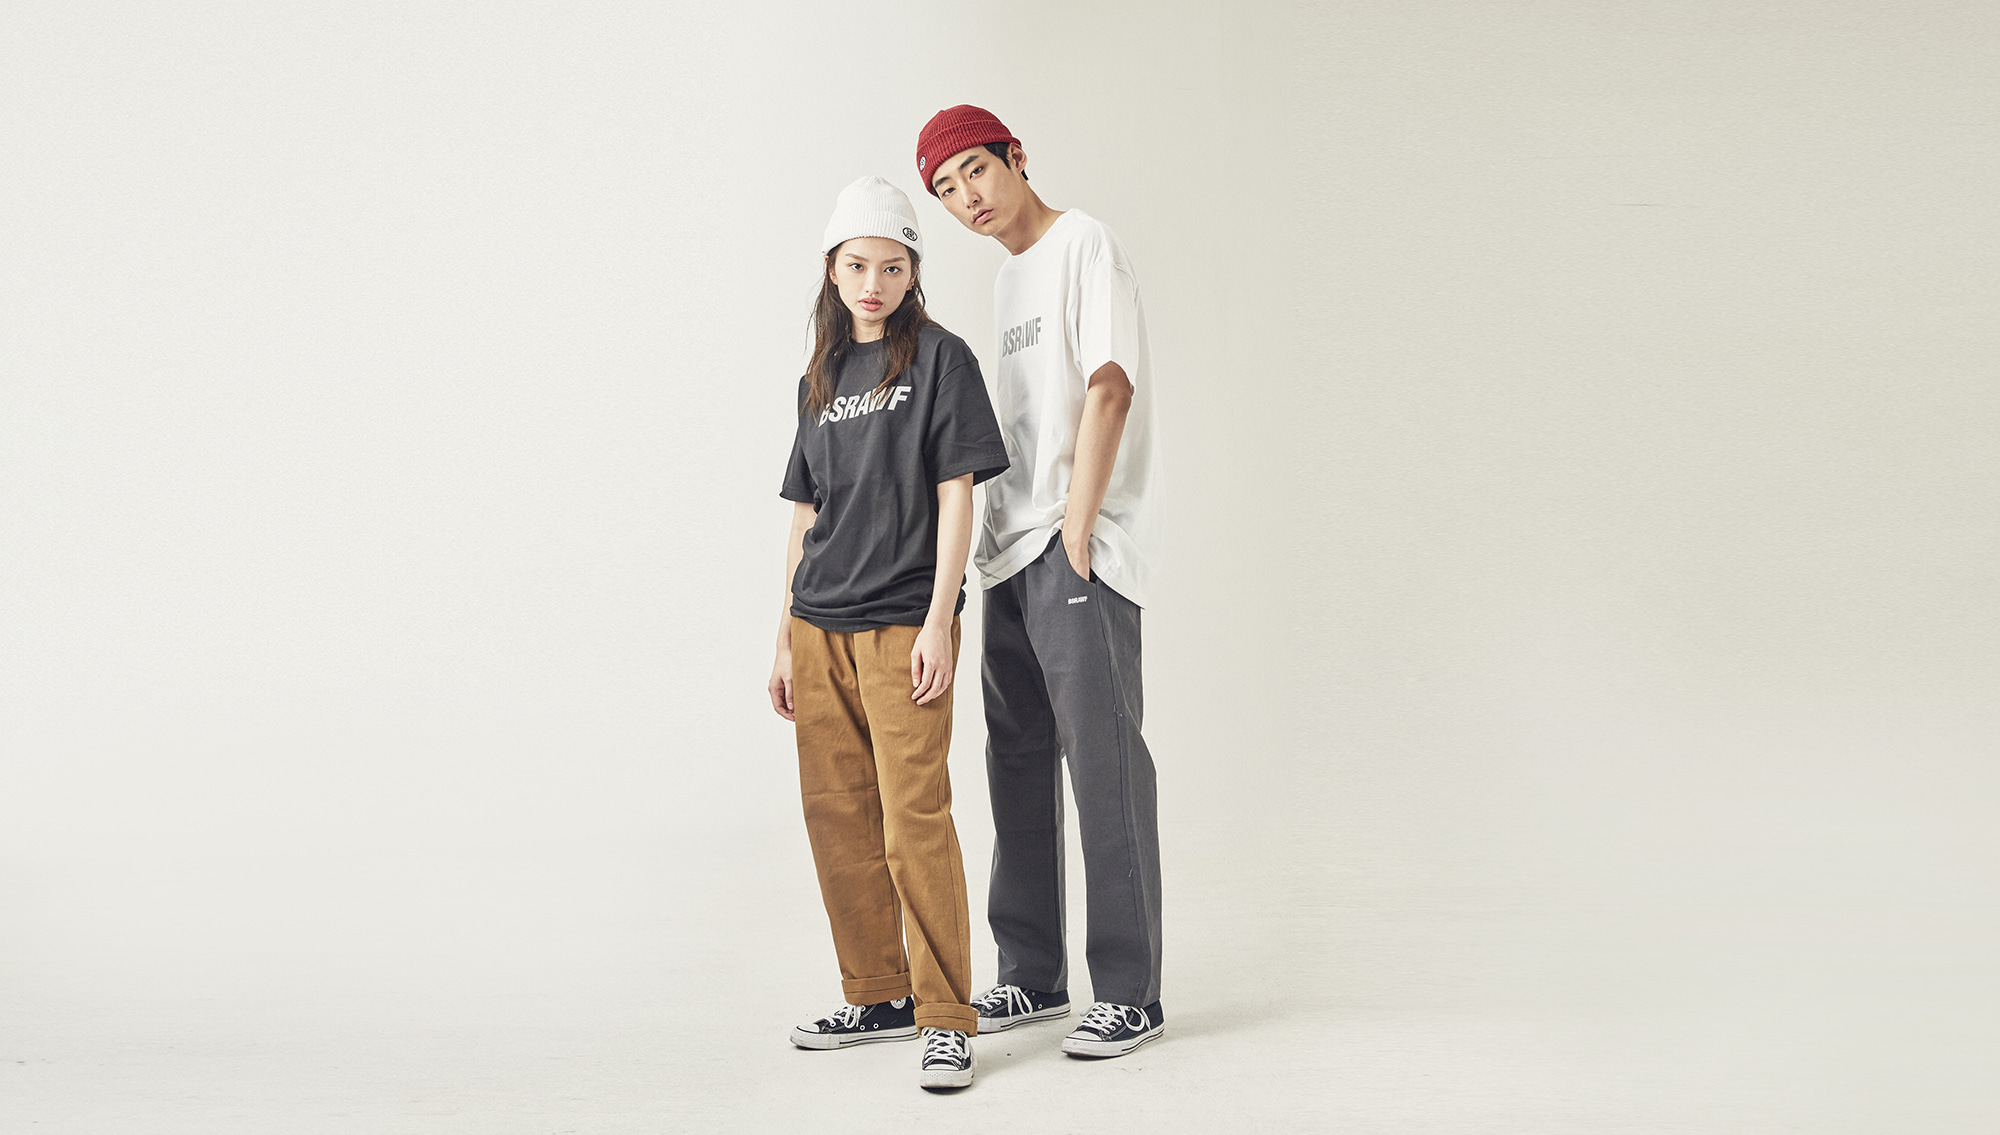 BSRABBIT BSRABBIT 18/19 SPRING LOOKBOOK | 進化